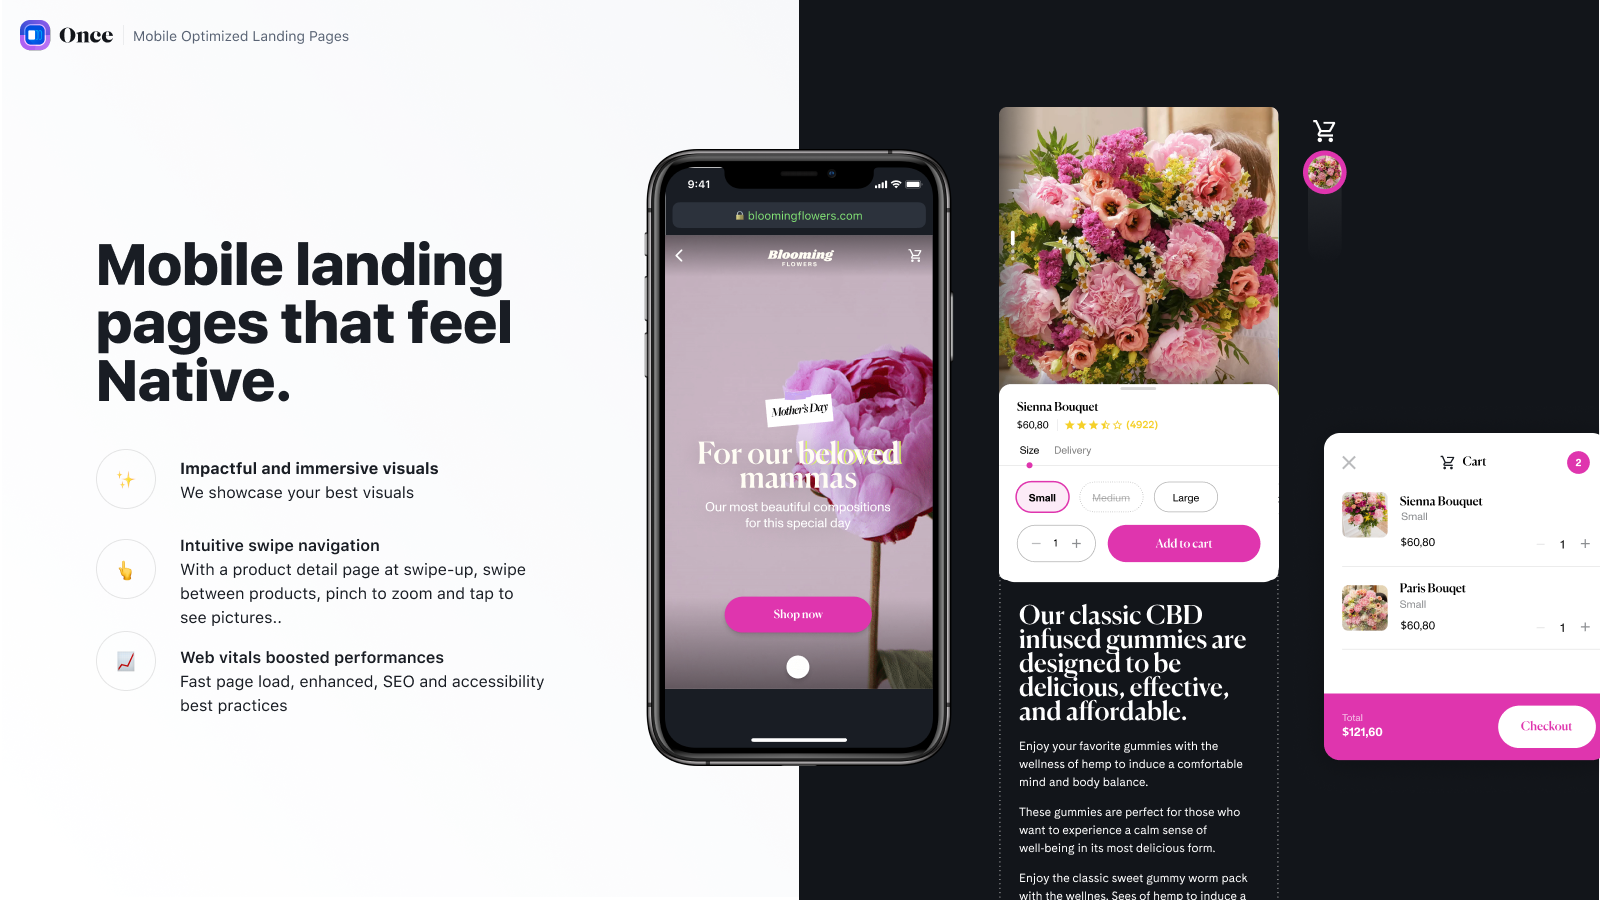 Mobile landing pages that feel native